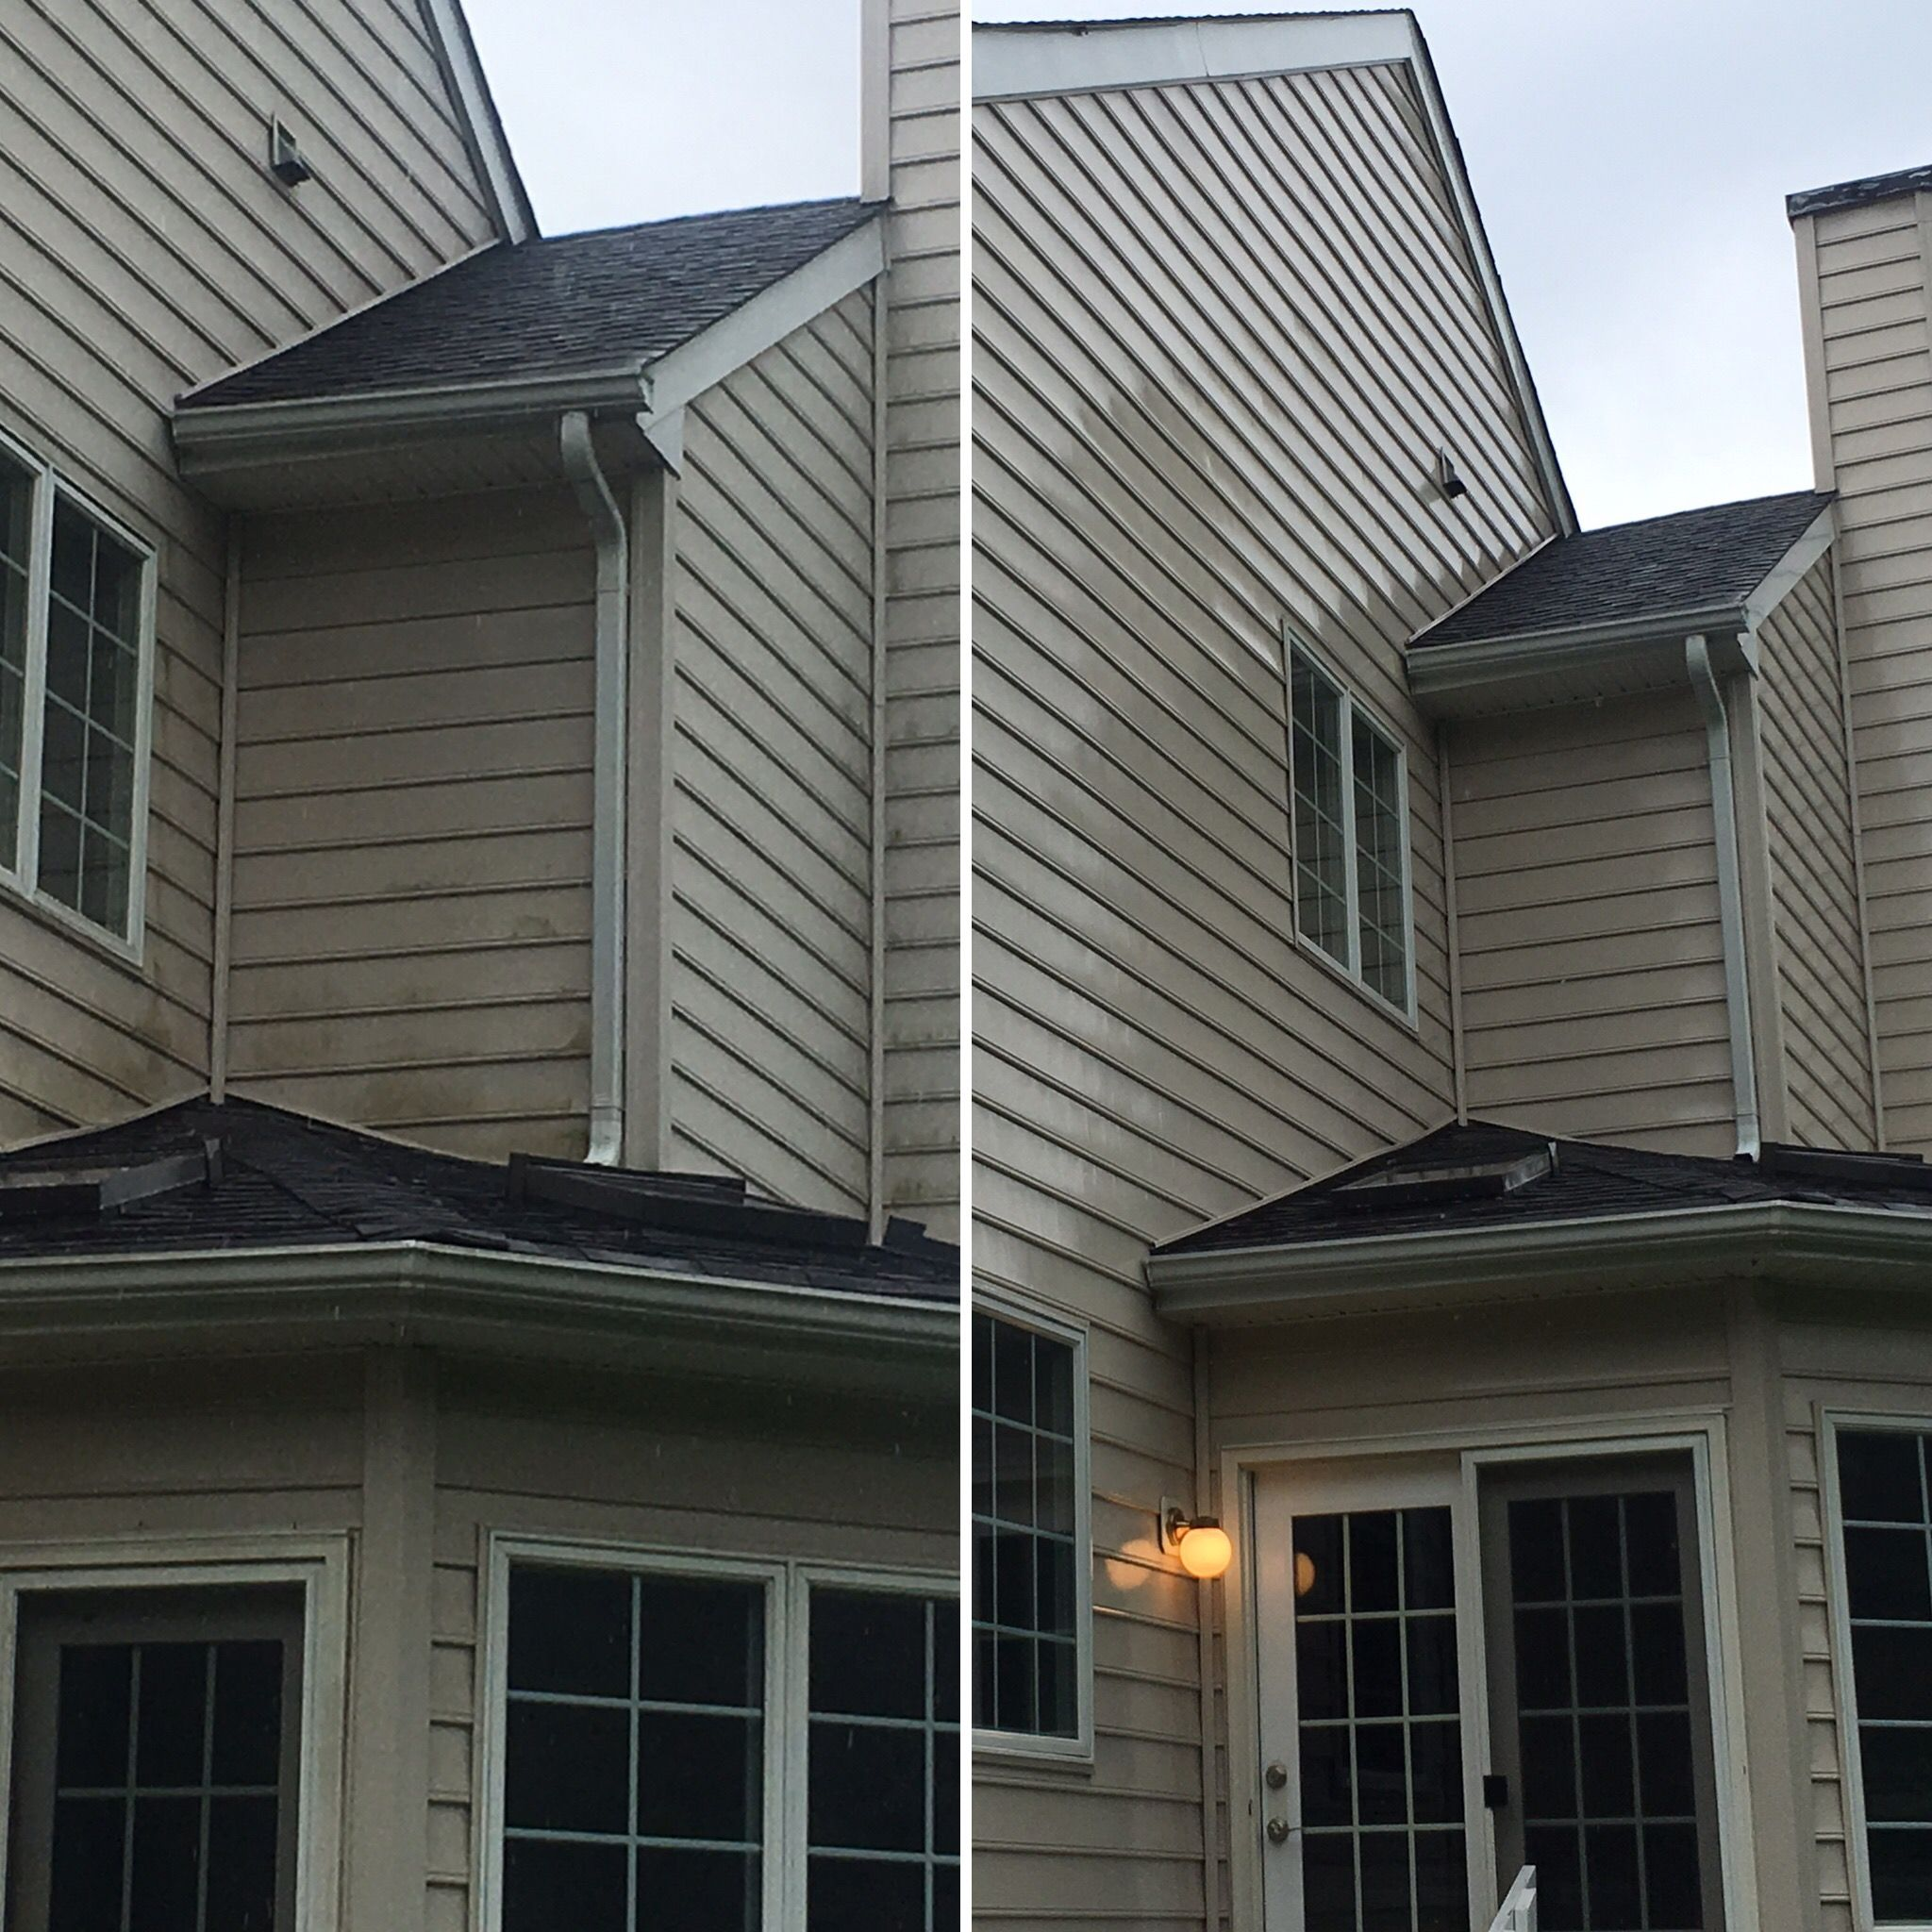 Cleaning Siding Mold And Mildew Removal With A Power Wash Service Call Us For A Free Quote 571 505 8868 Or Go T Clean Siding Mildew Remover Mold And Mildew